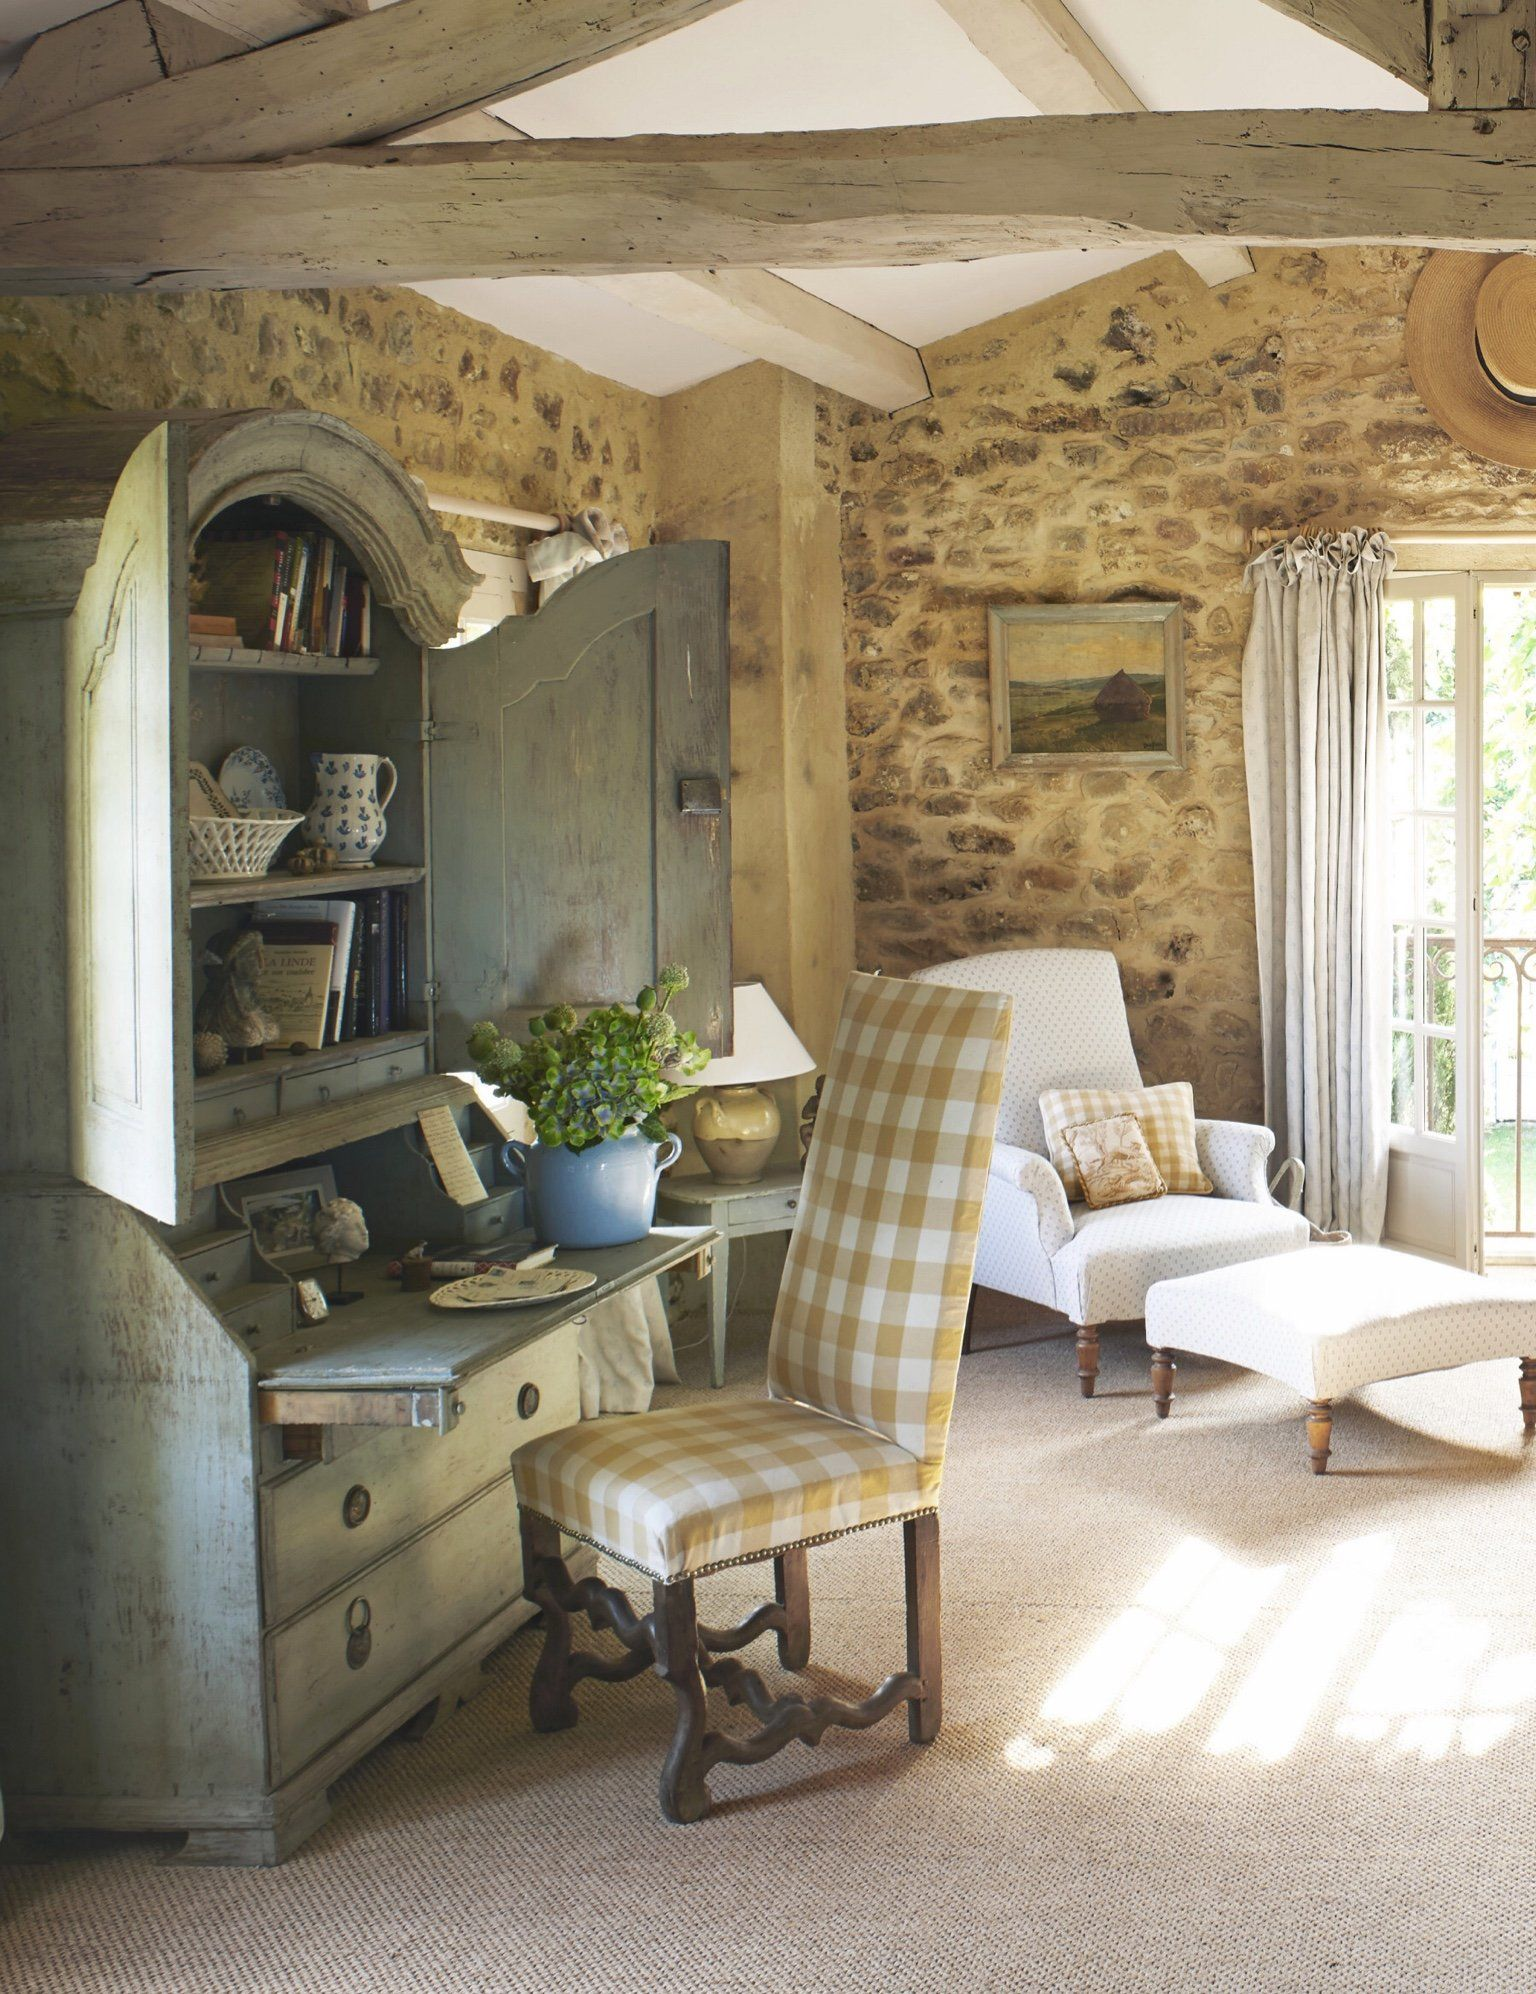 Luxury Design Ideas And Home Decorating Tips French Country Interiors Provence Interior Cottage Interiors